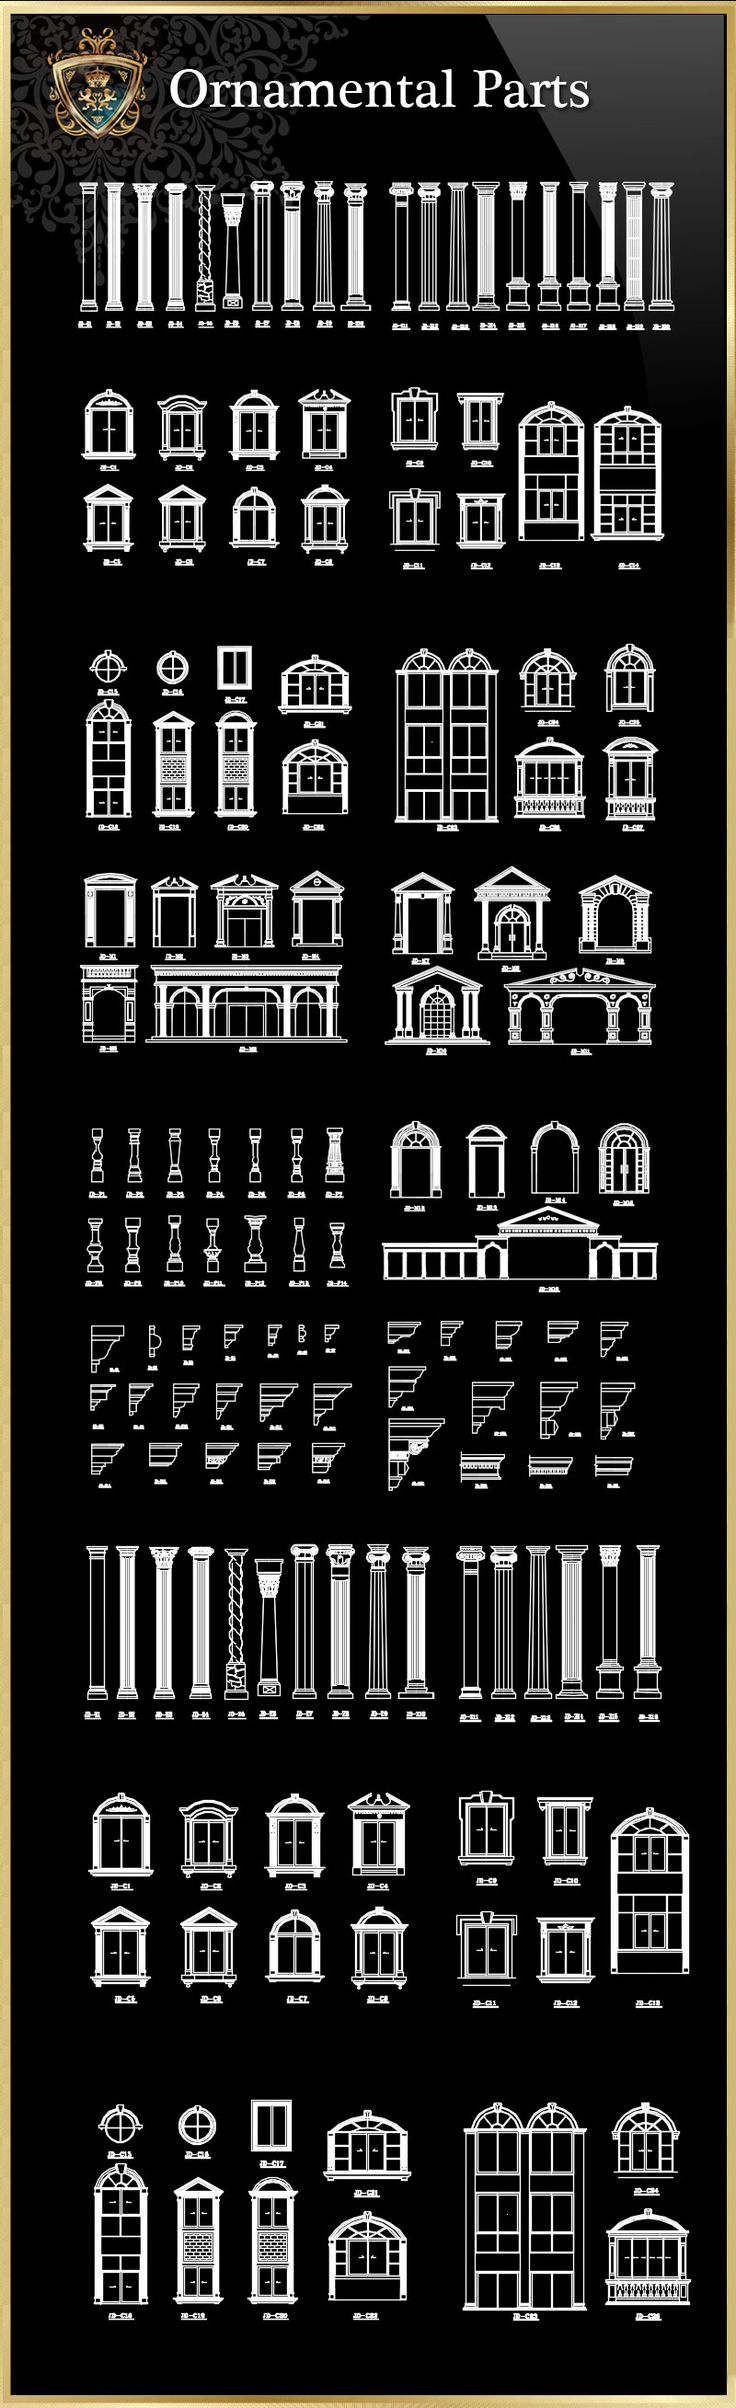 Ornamental Parts of Buildings 7 | Free Cad Blocks & Drawings Download Center